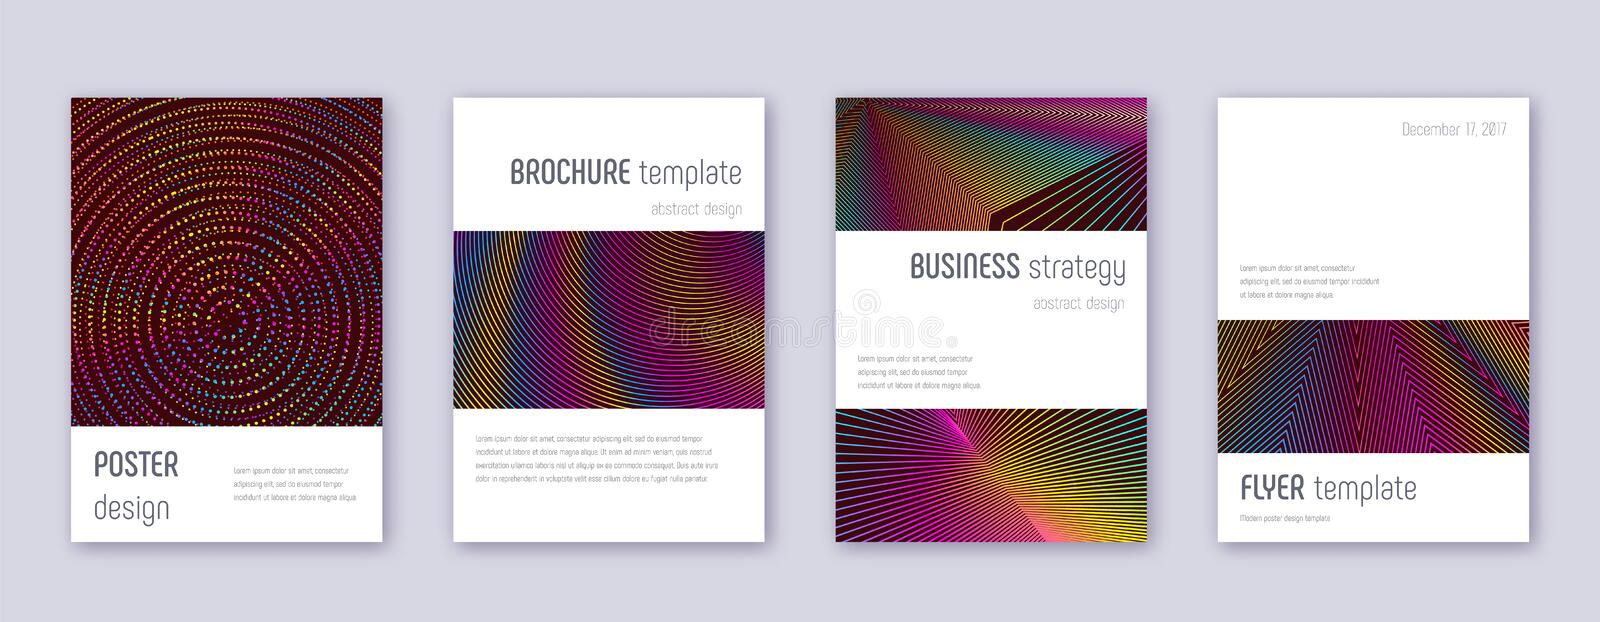 Minimalistic brochure design template set. Rainbow. Abstract lines on wine red background. Authentic brochure design. Astonishing catalog, poster, book template stock illustration